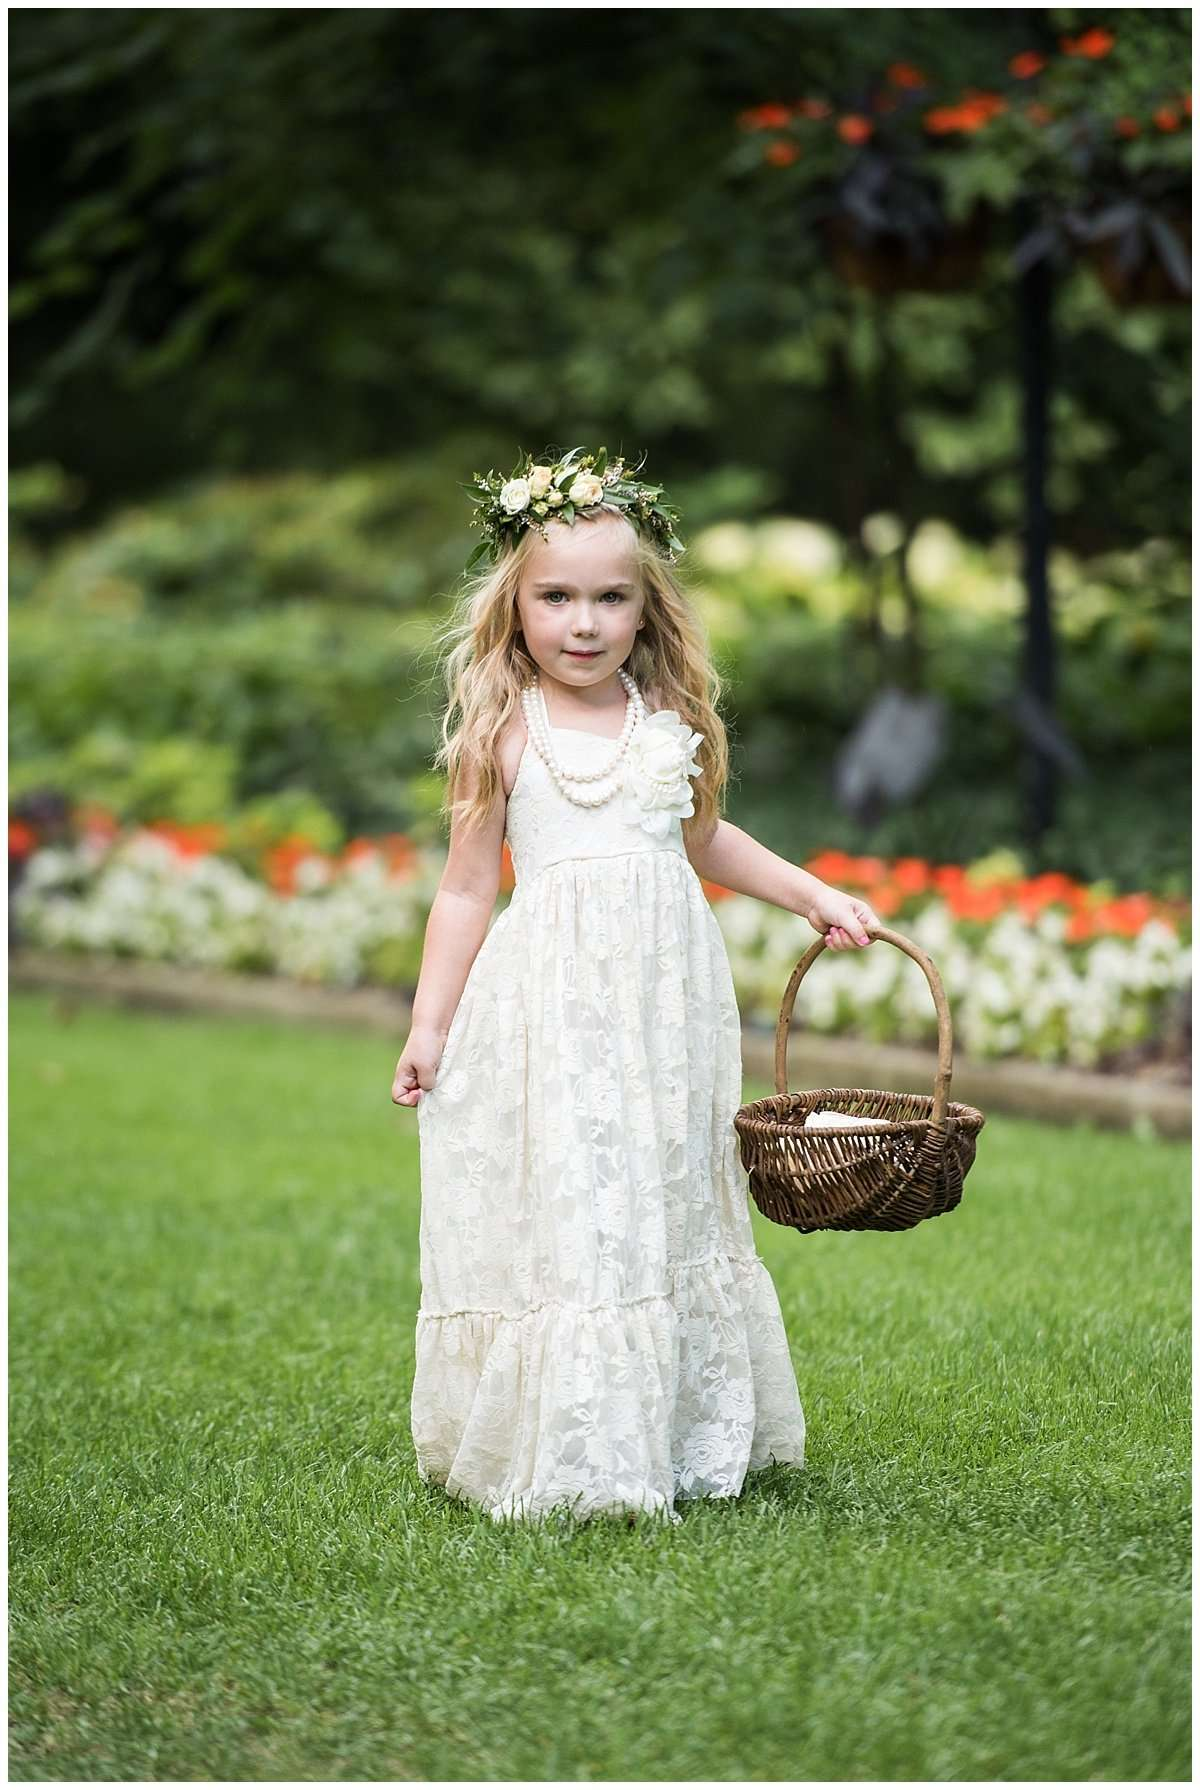 Flowergirl with long blond hair wearing a crown of flowers and holding a basket of petals.